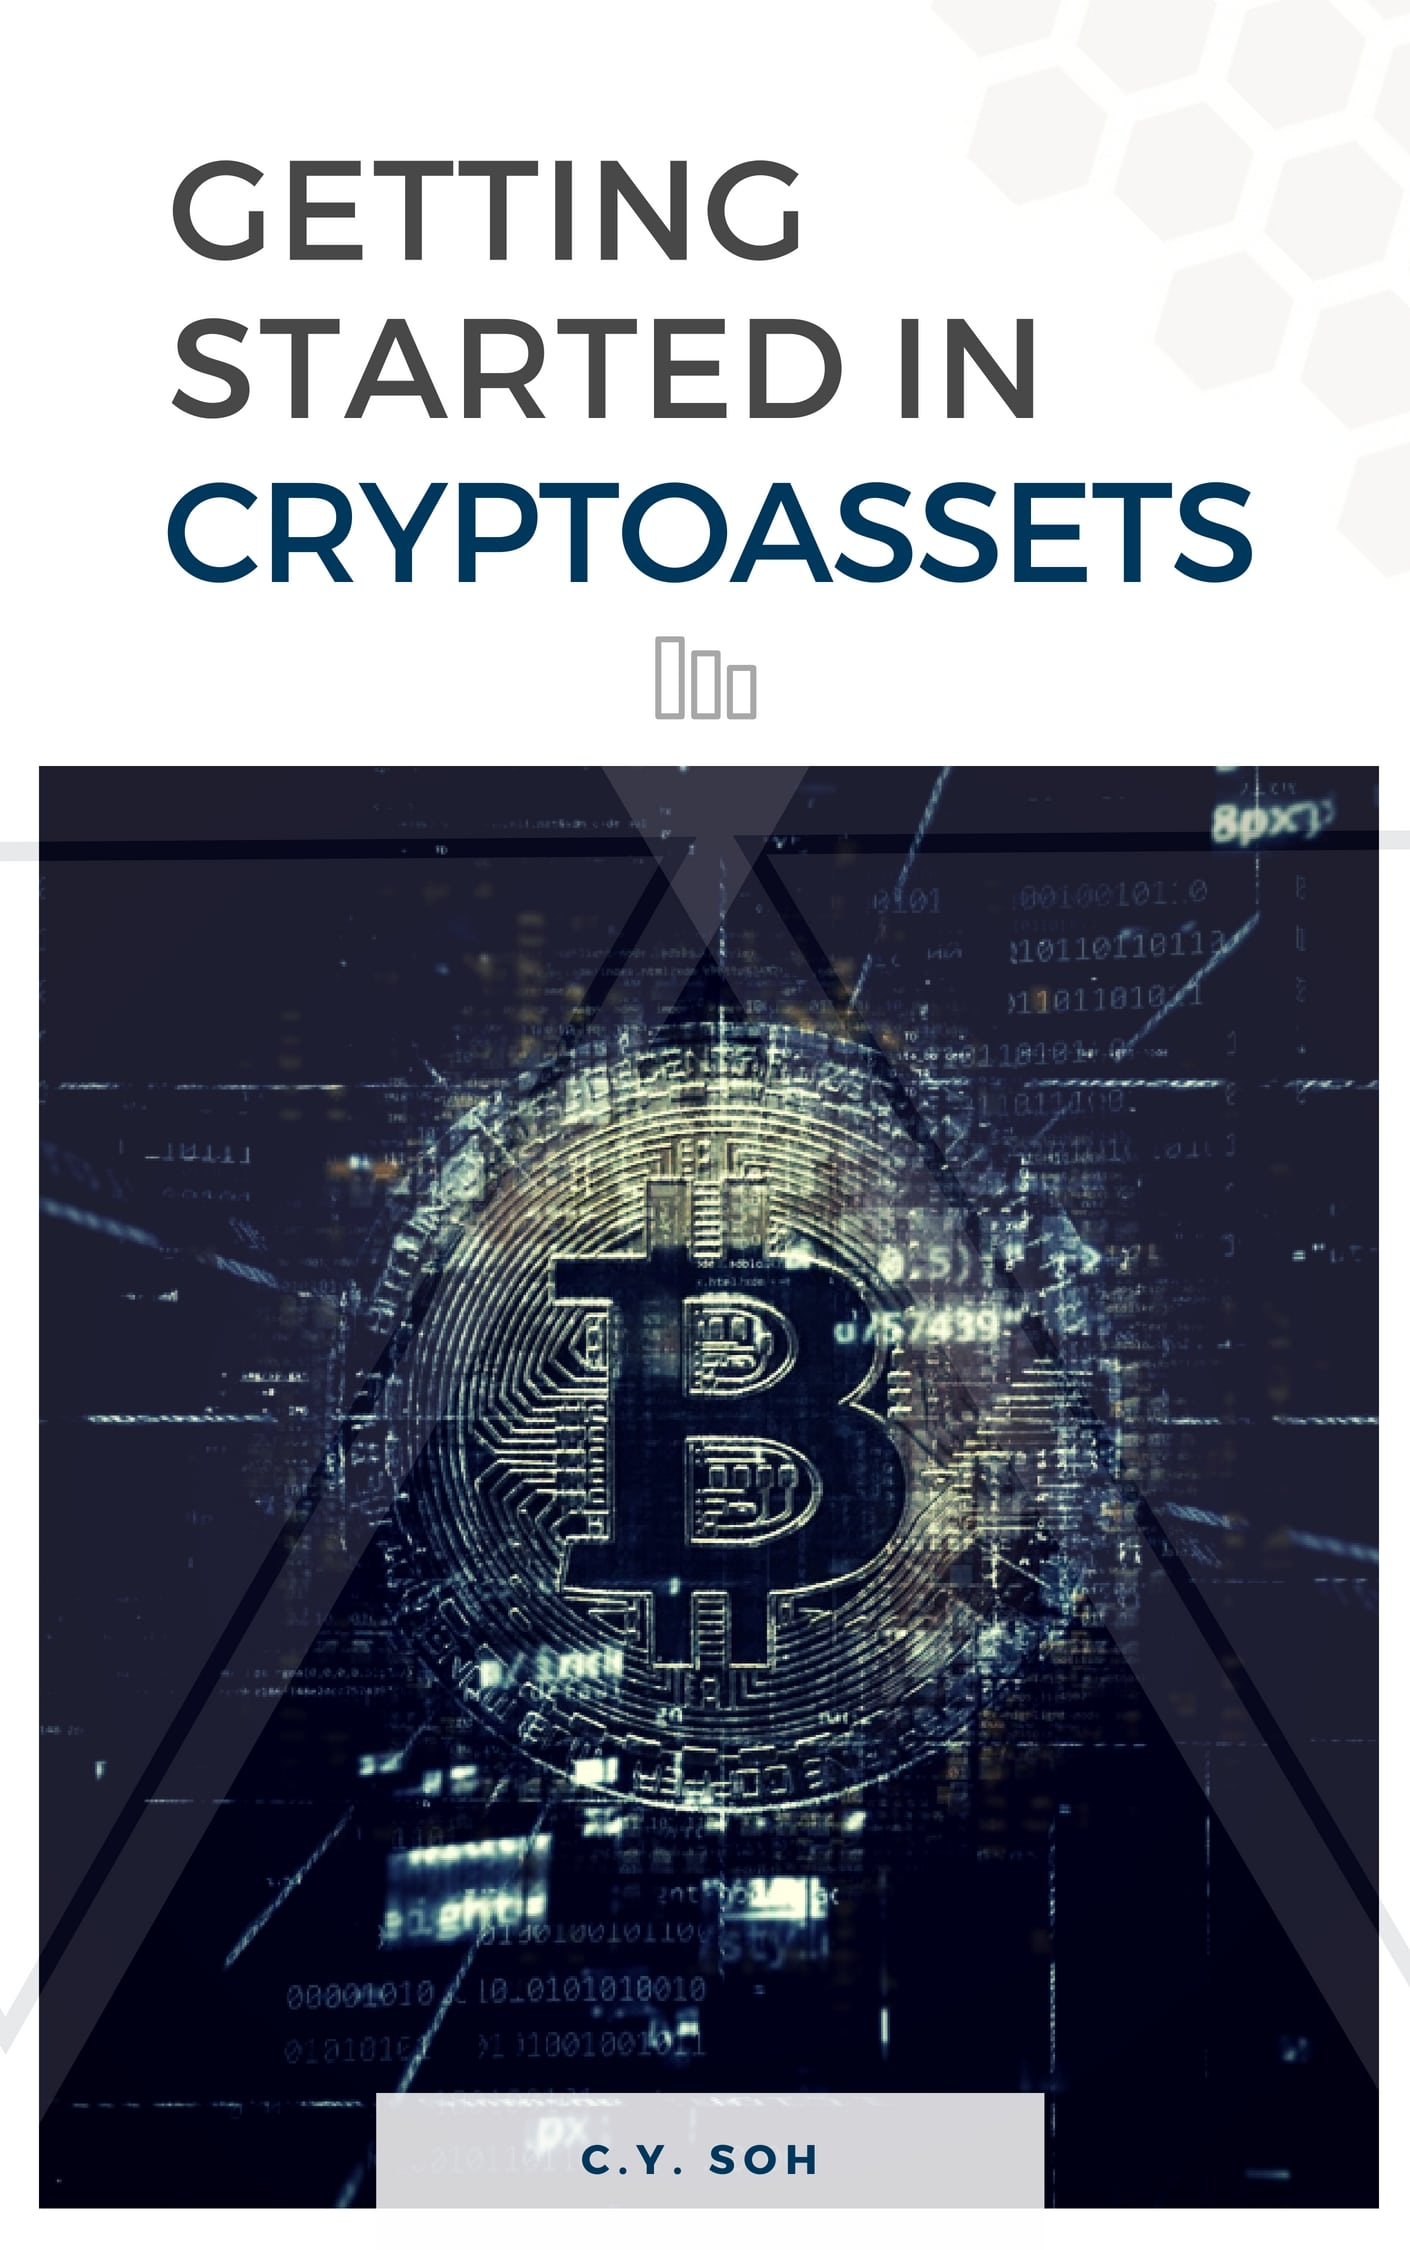 Getting Started In Cryptoassets